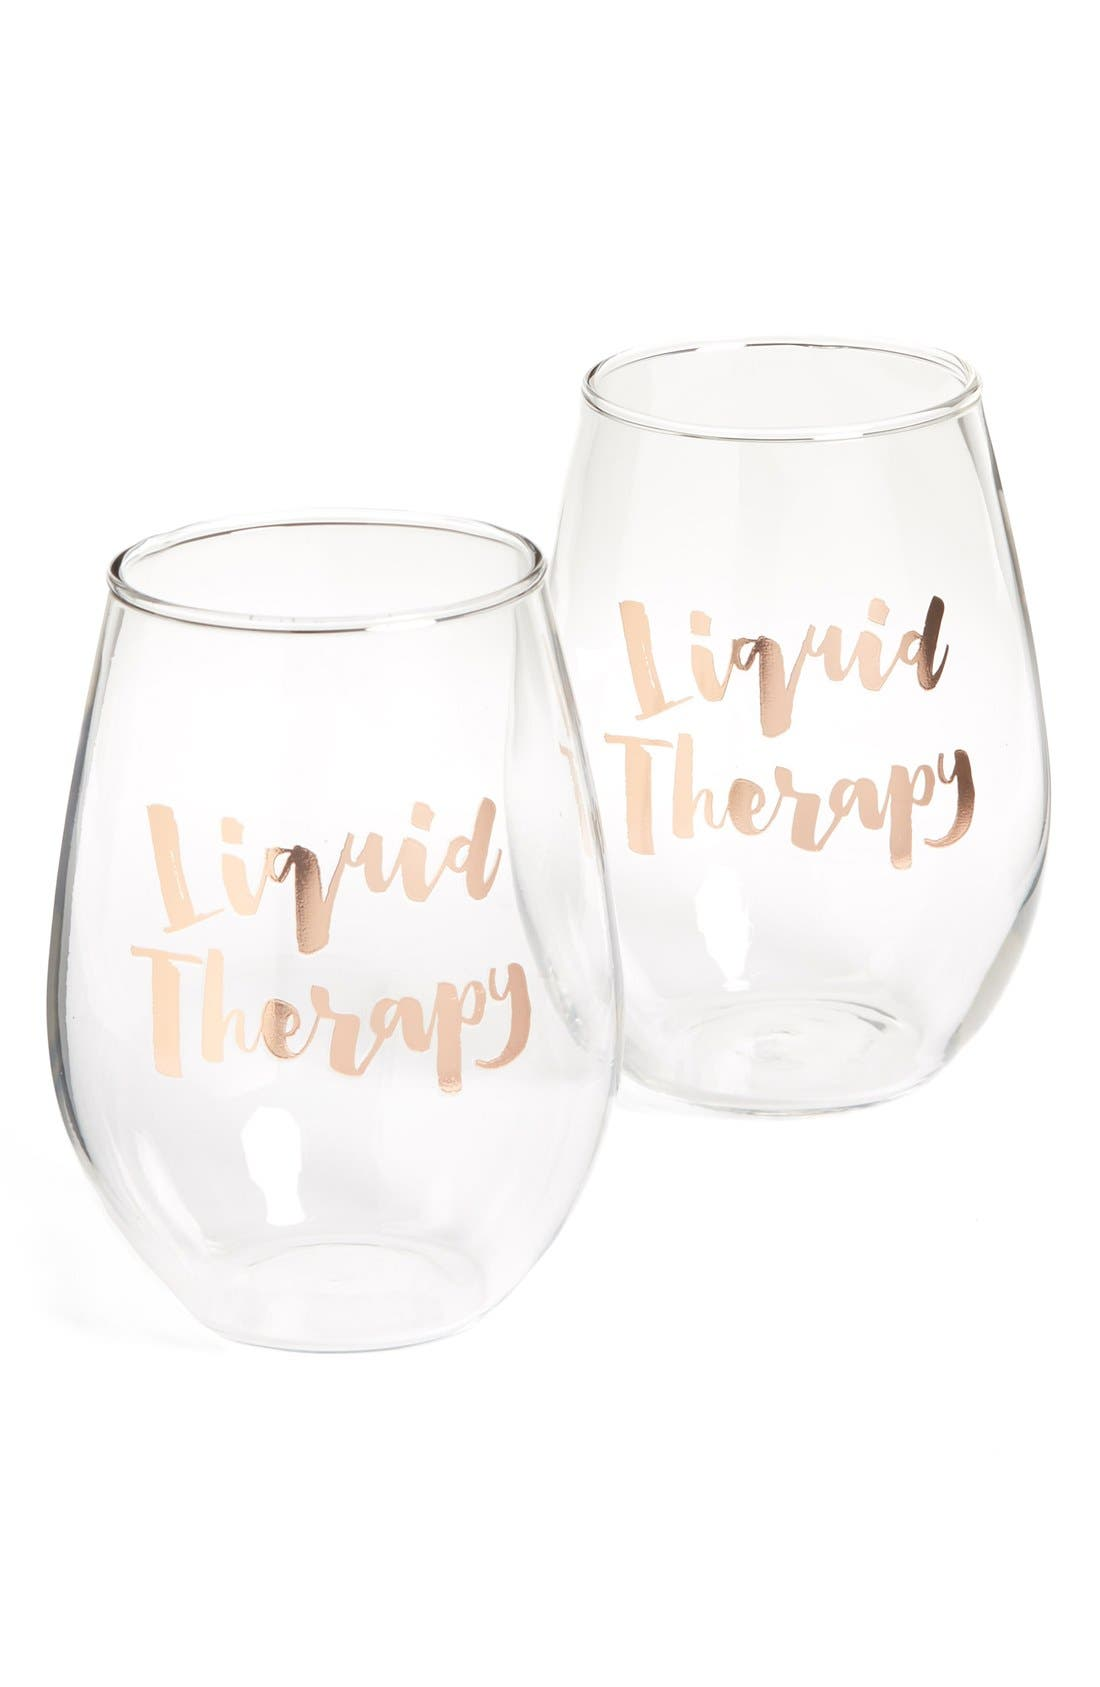 Liquid Therapy Set of 2 Stemless Wine Glasses,                             Main thumbnail 1, color,                             100